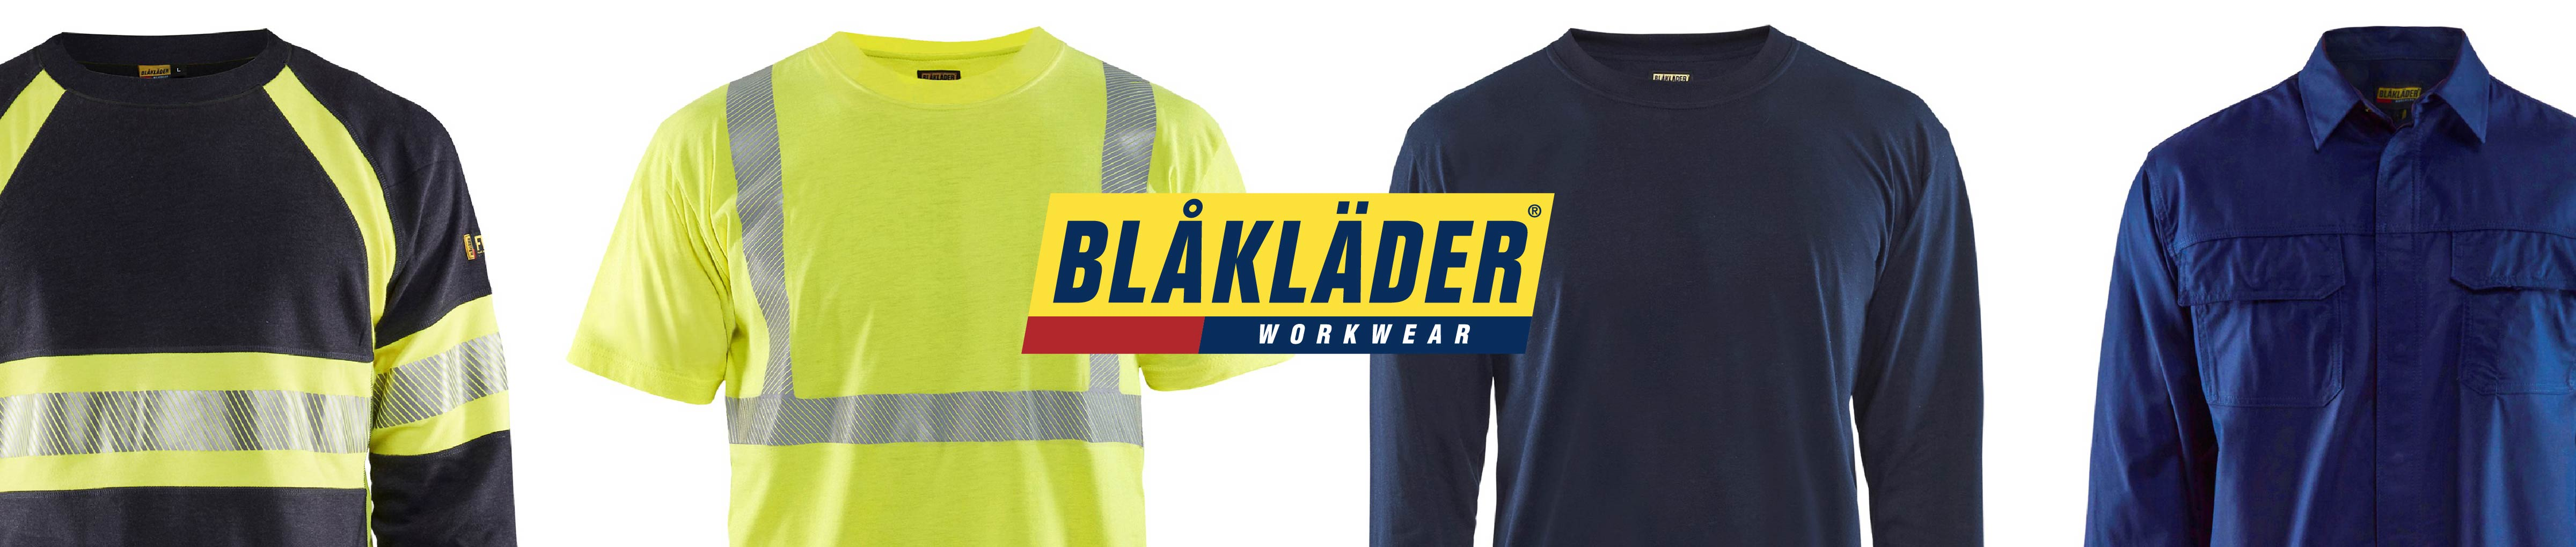 Flame retardant work shirts